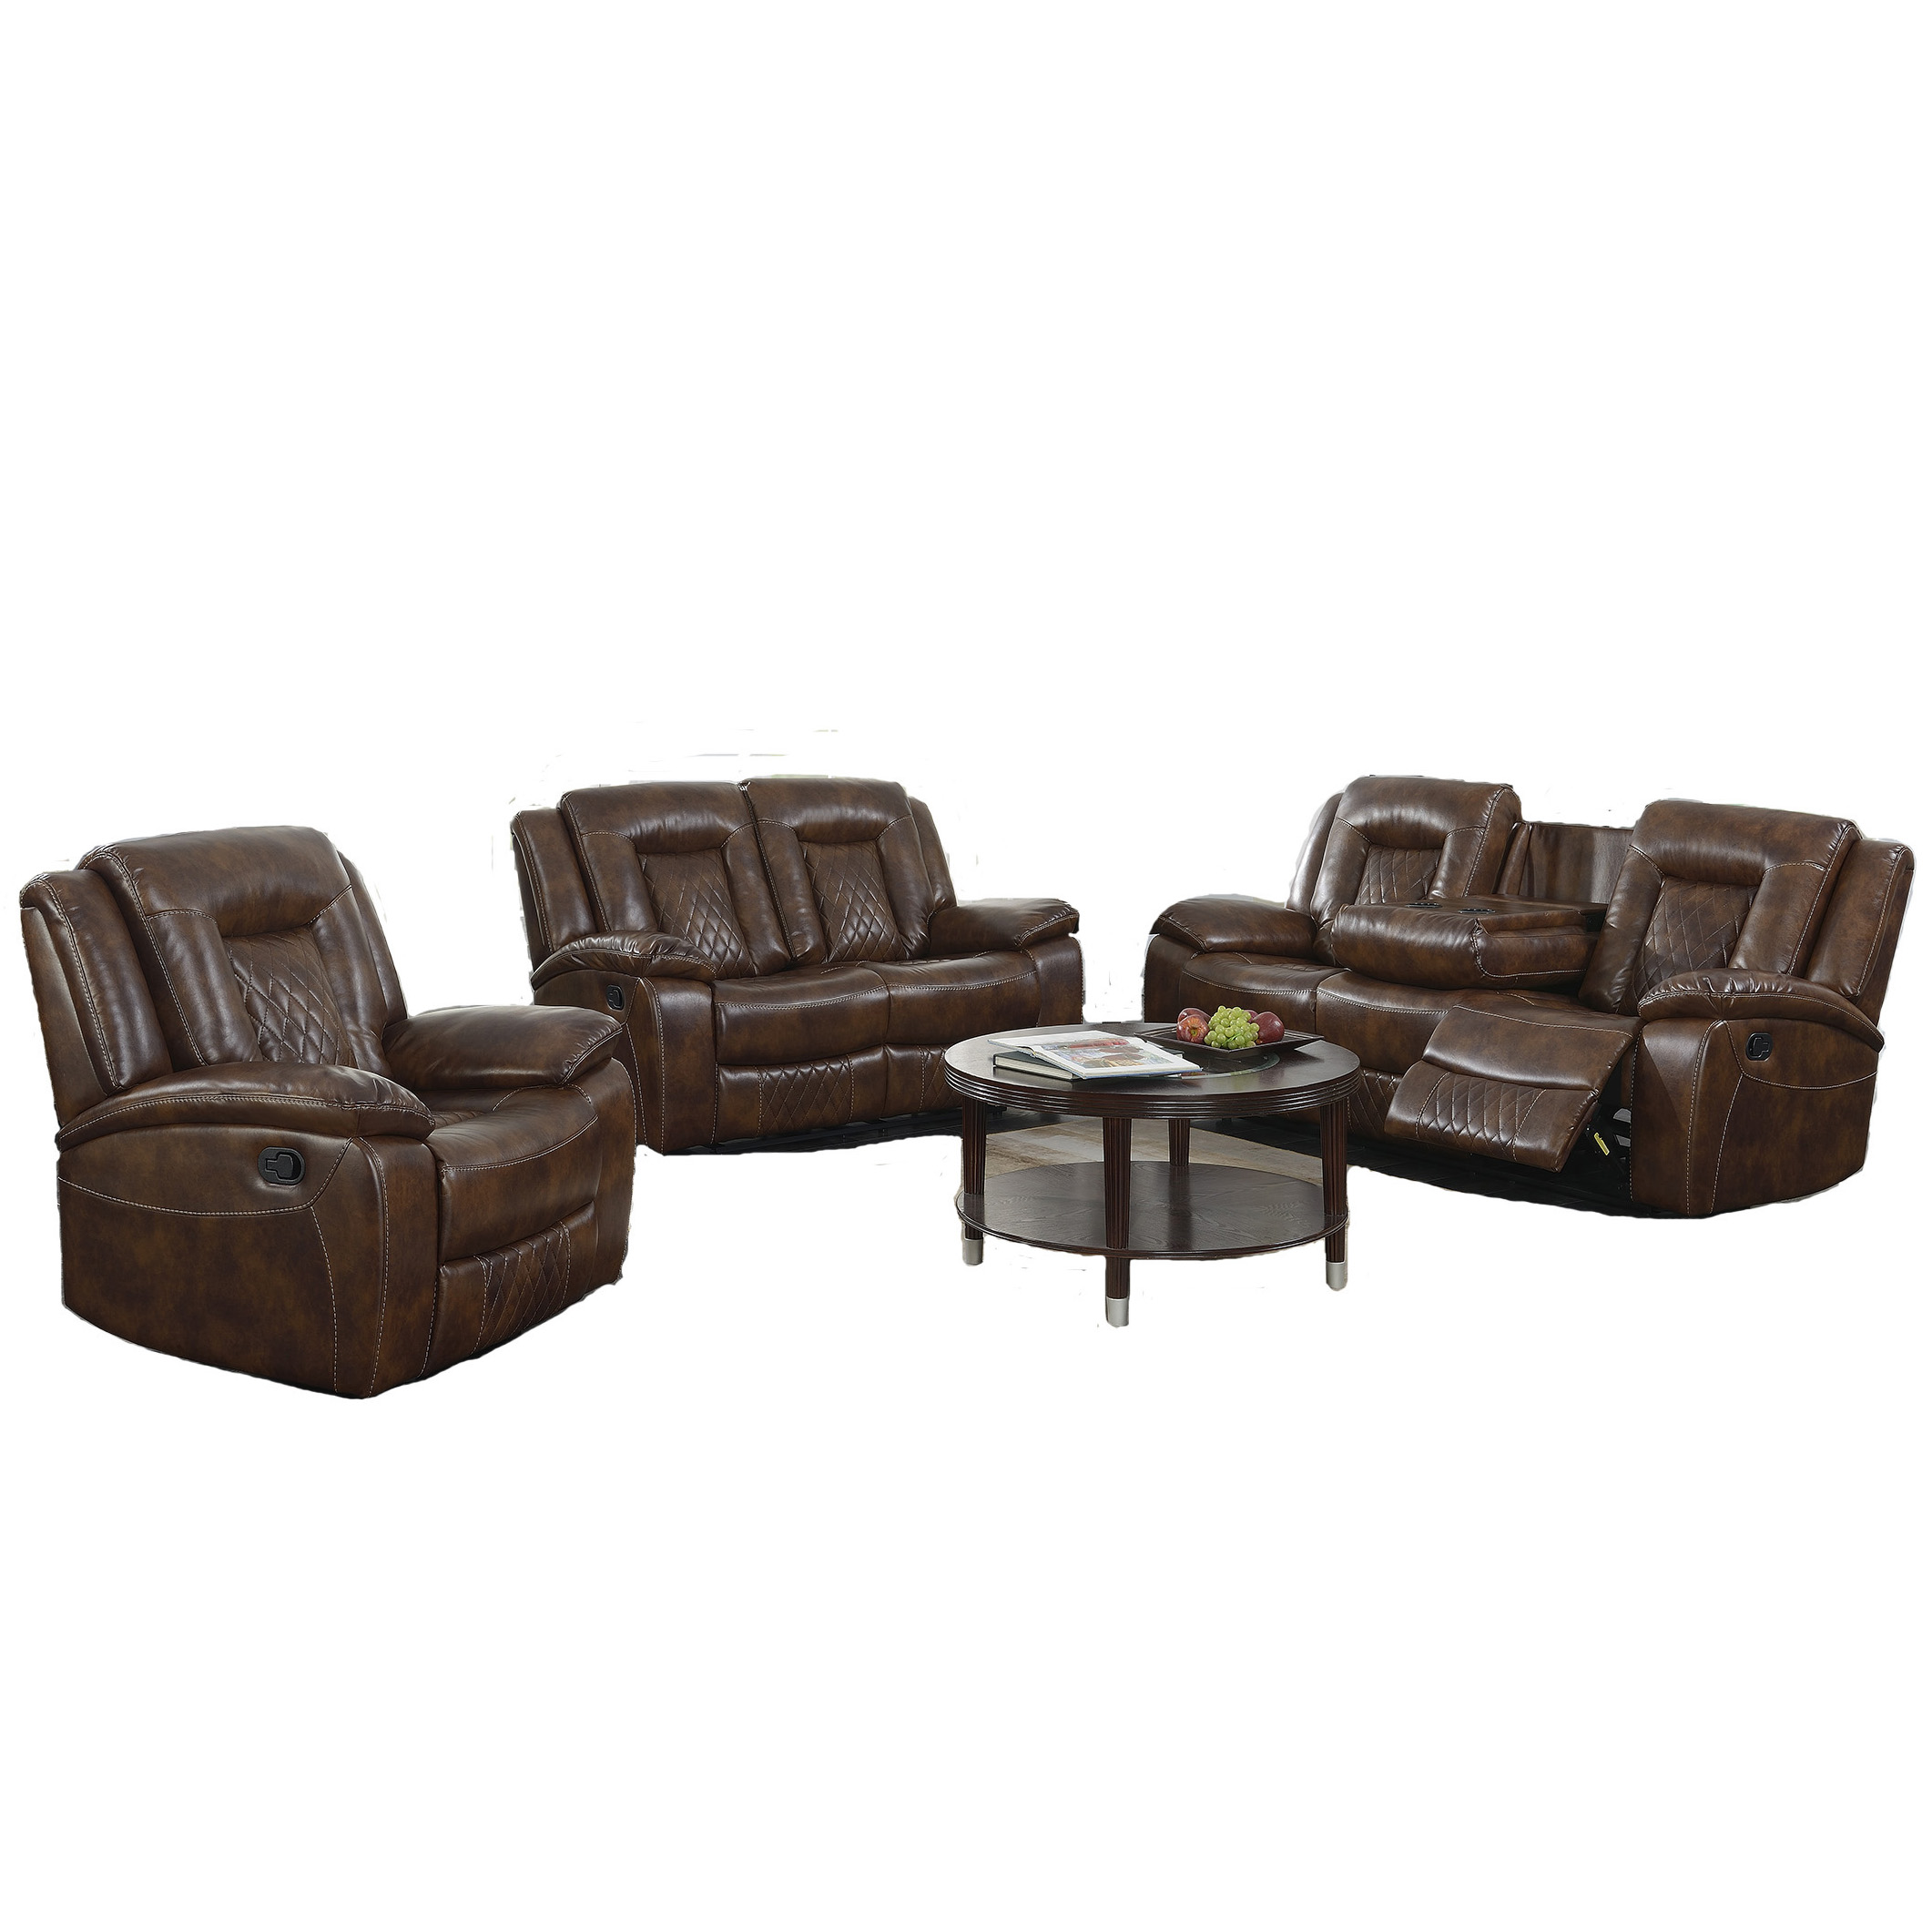 Miraculous Hot Sale New Design Brown Air Leather Recliner Sofa For Living Room Buy Electric Recliner Sofa Recliner Sofa Sets Rocker Recliner Product On Bralicious Painted Fabric Chair Ideas Braliciousco